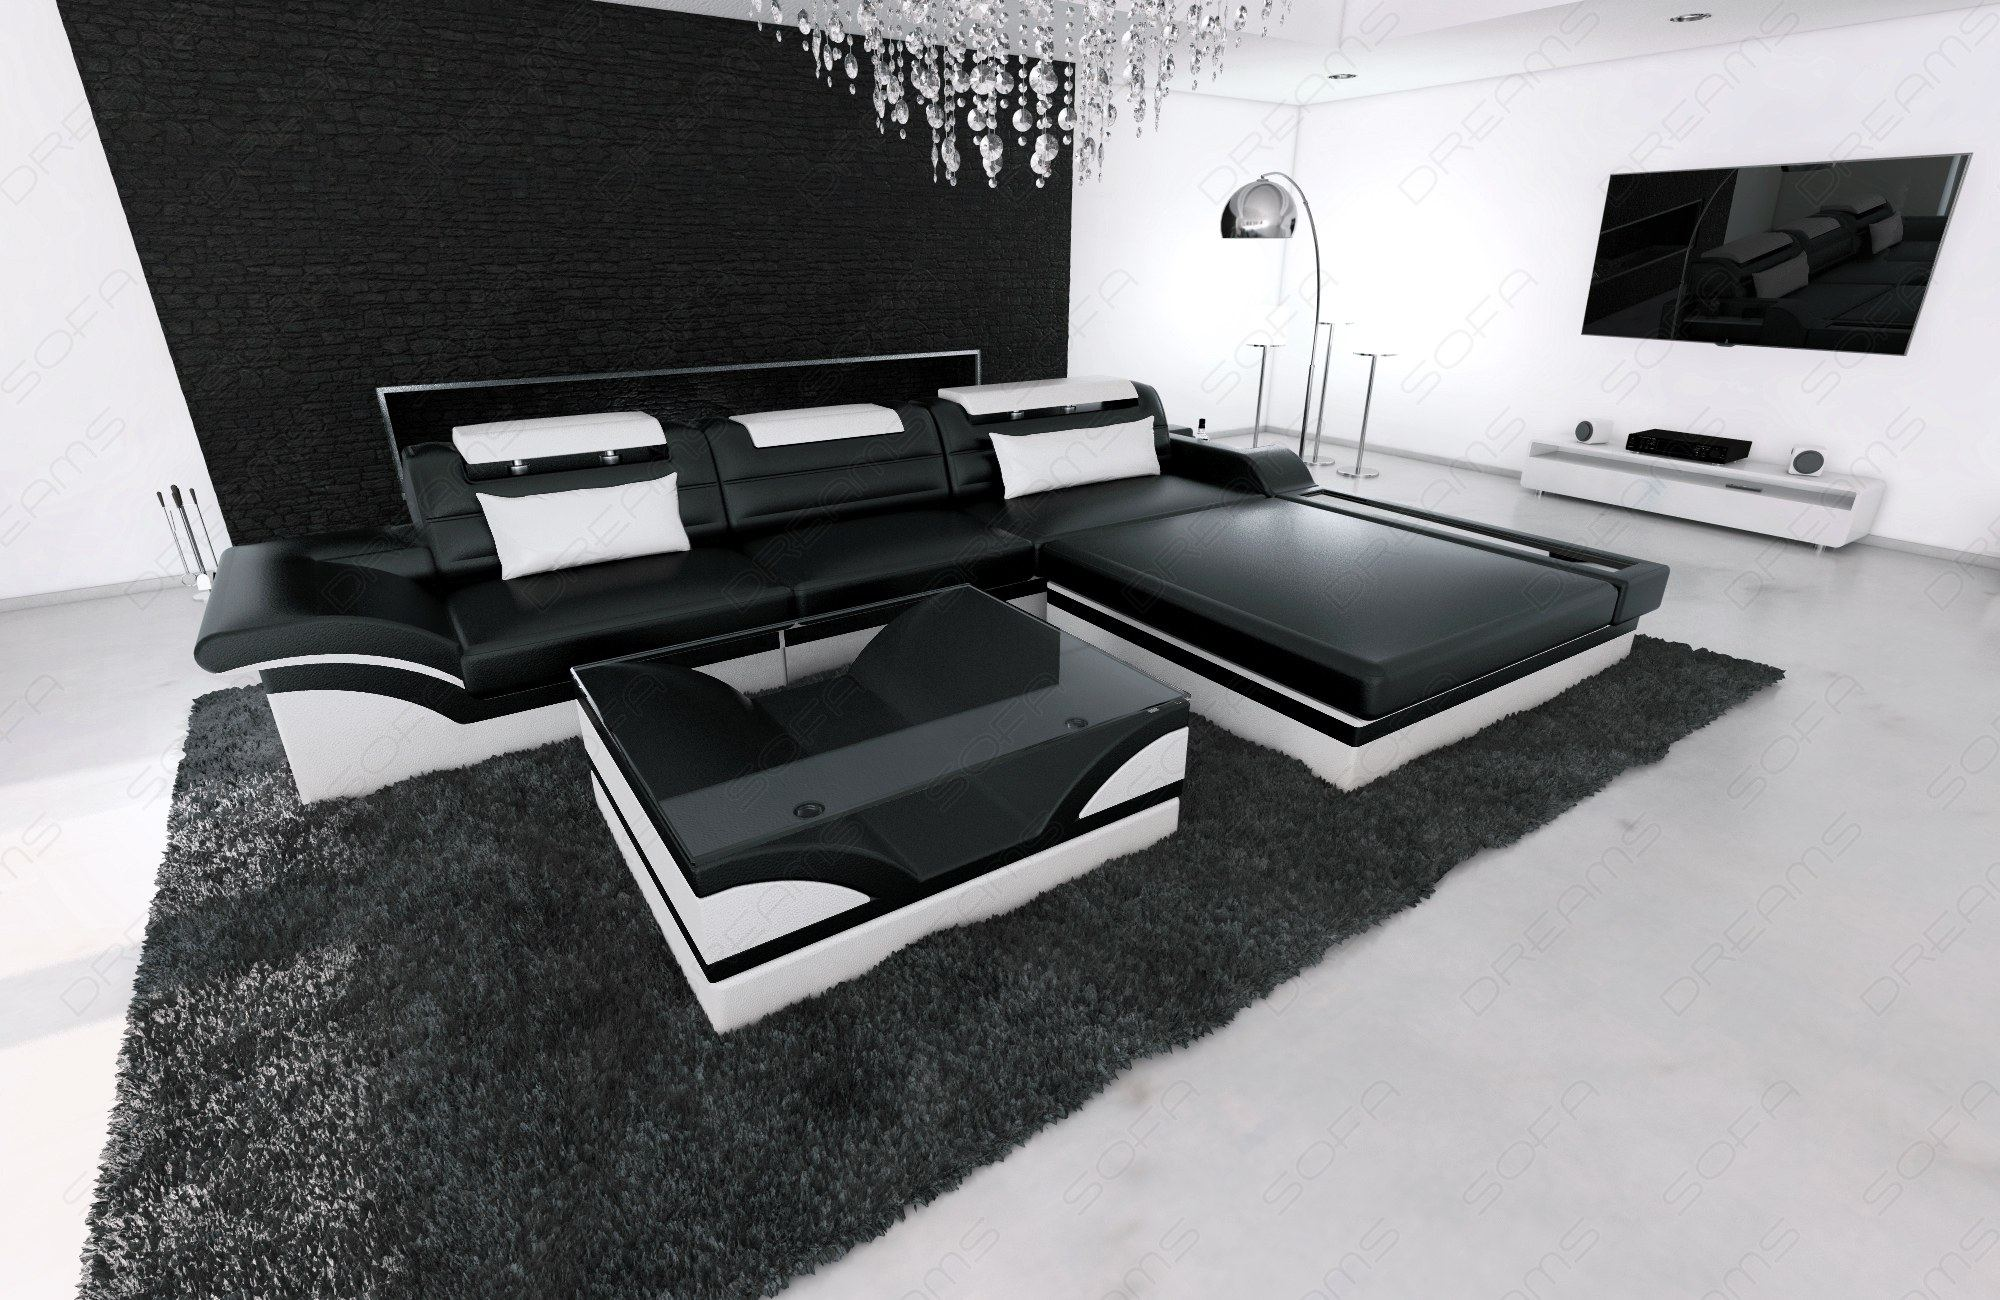 ledersofa designcouch parma l form couch schwarz weiss. Black Bedroom Furniture Sets. Home Design Ideas